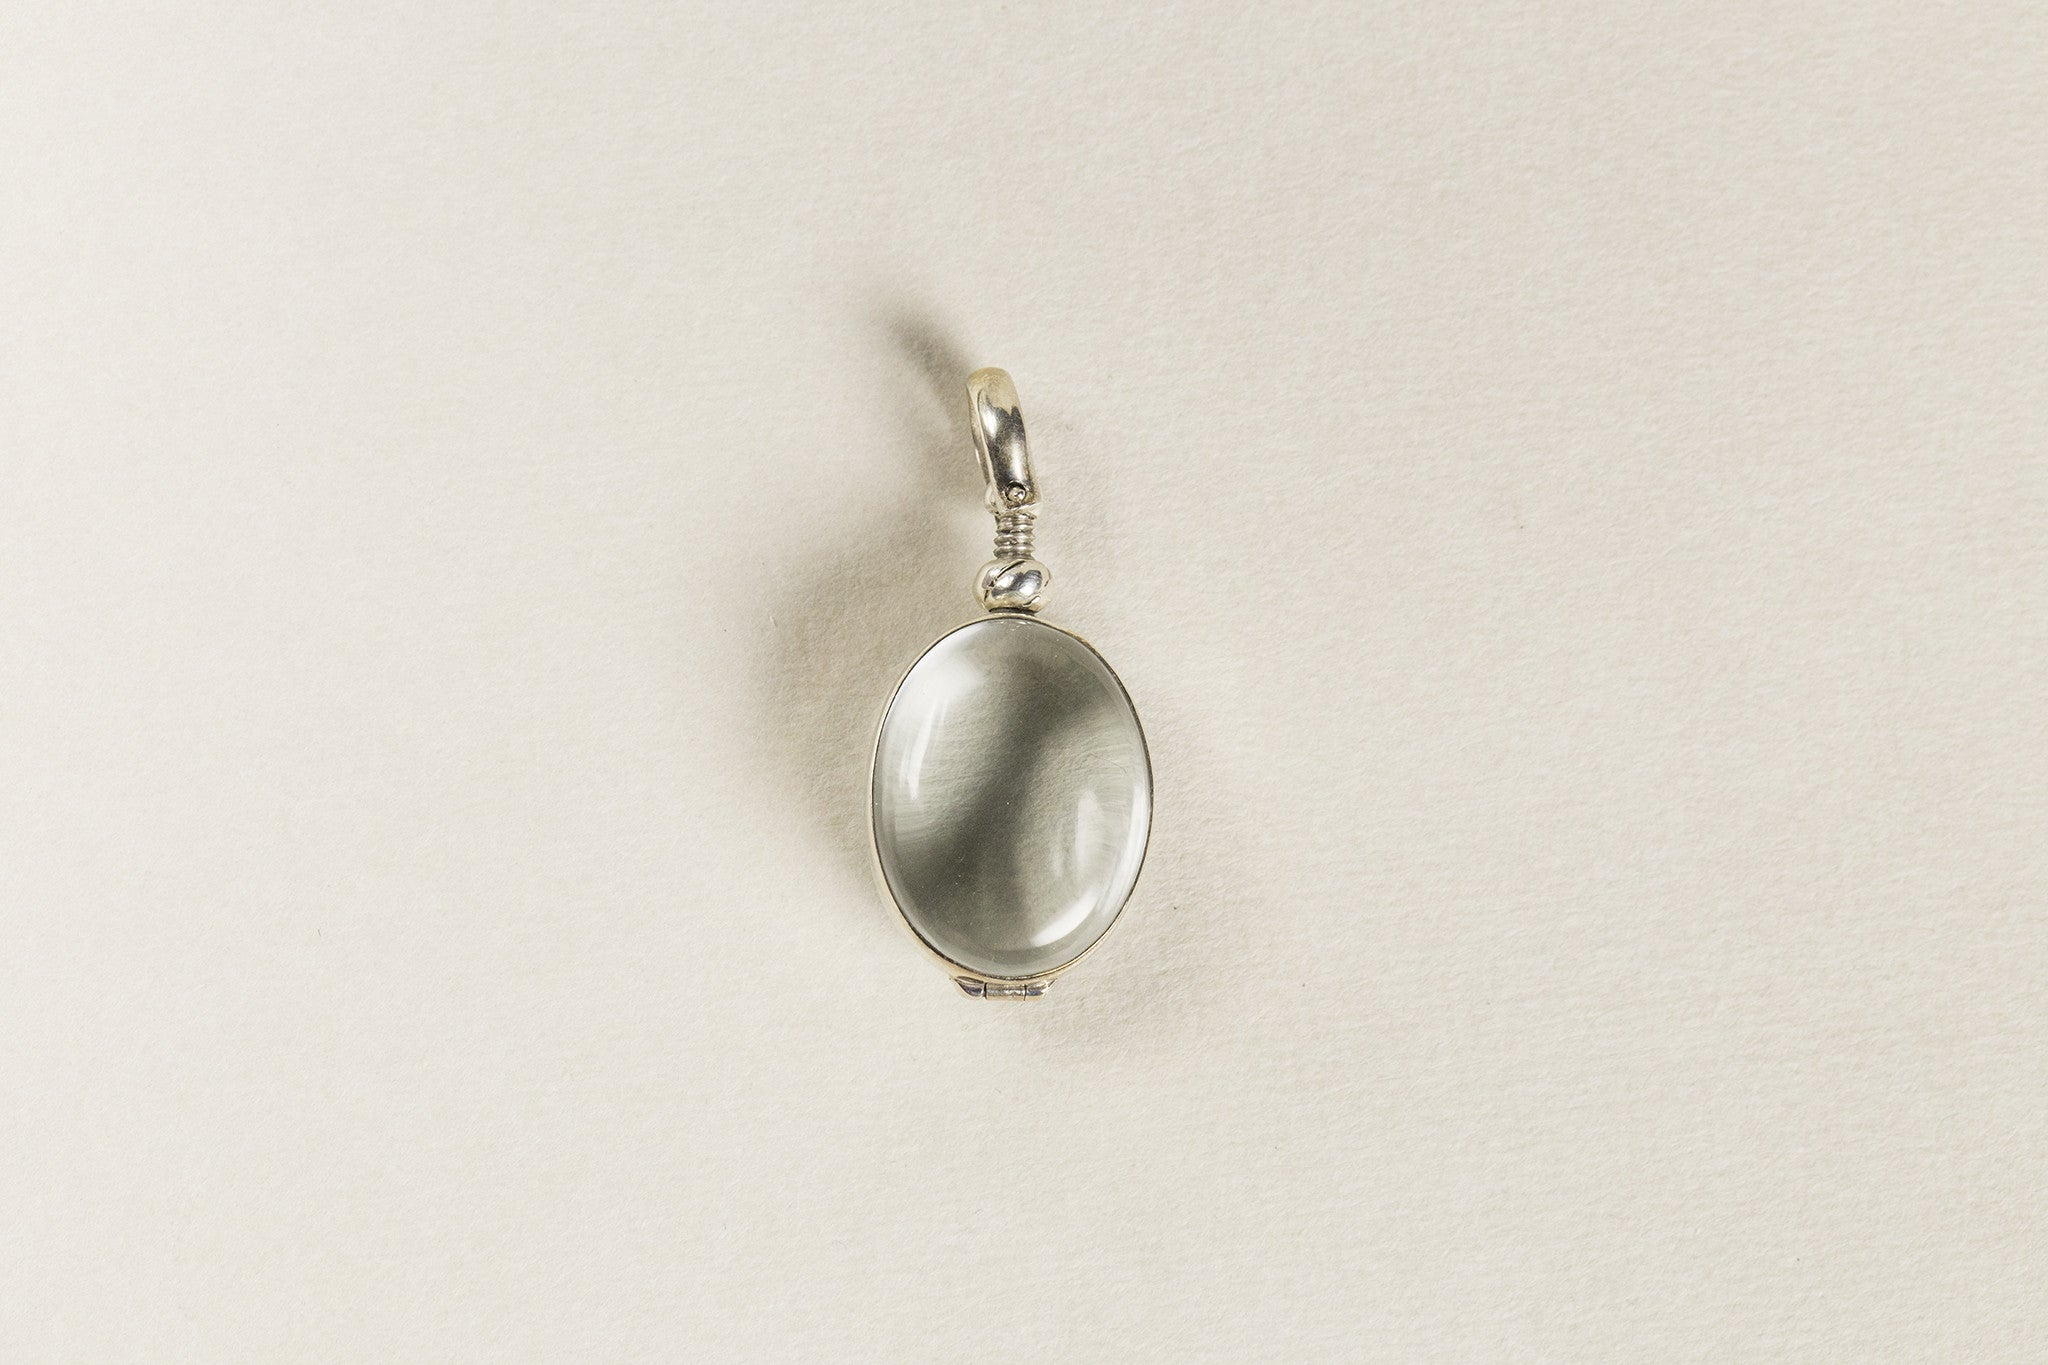 also available on feltlondon.com is an oval version of the round locket